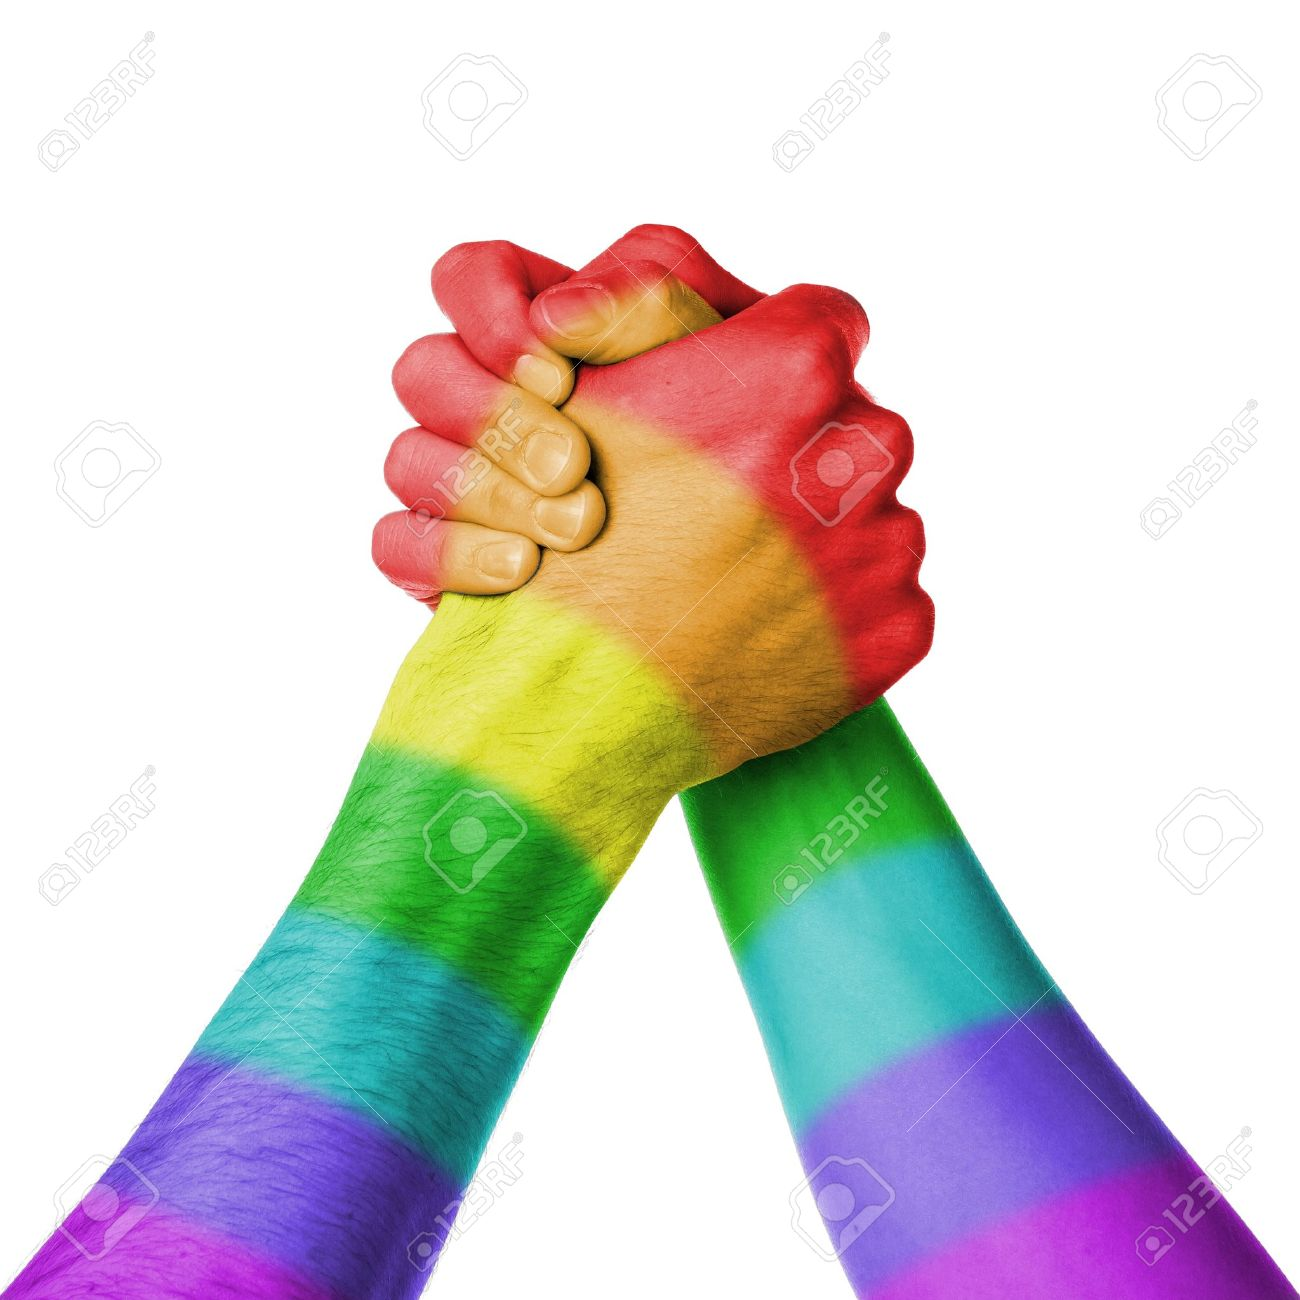 Man and woman in arm wrestlin, white background, rainbow flag pattern Stock Photo - 19321836